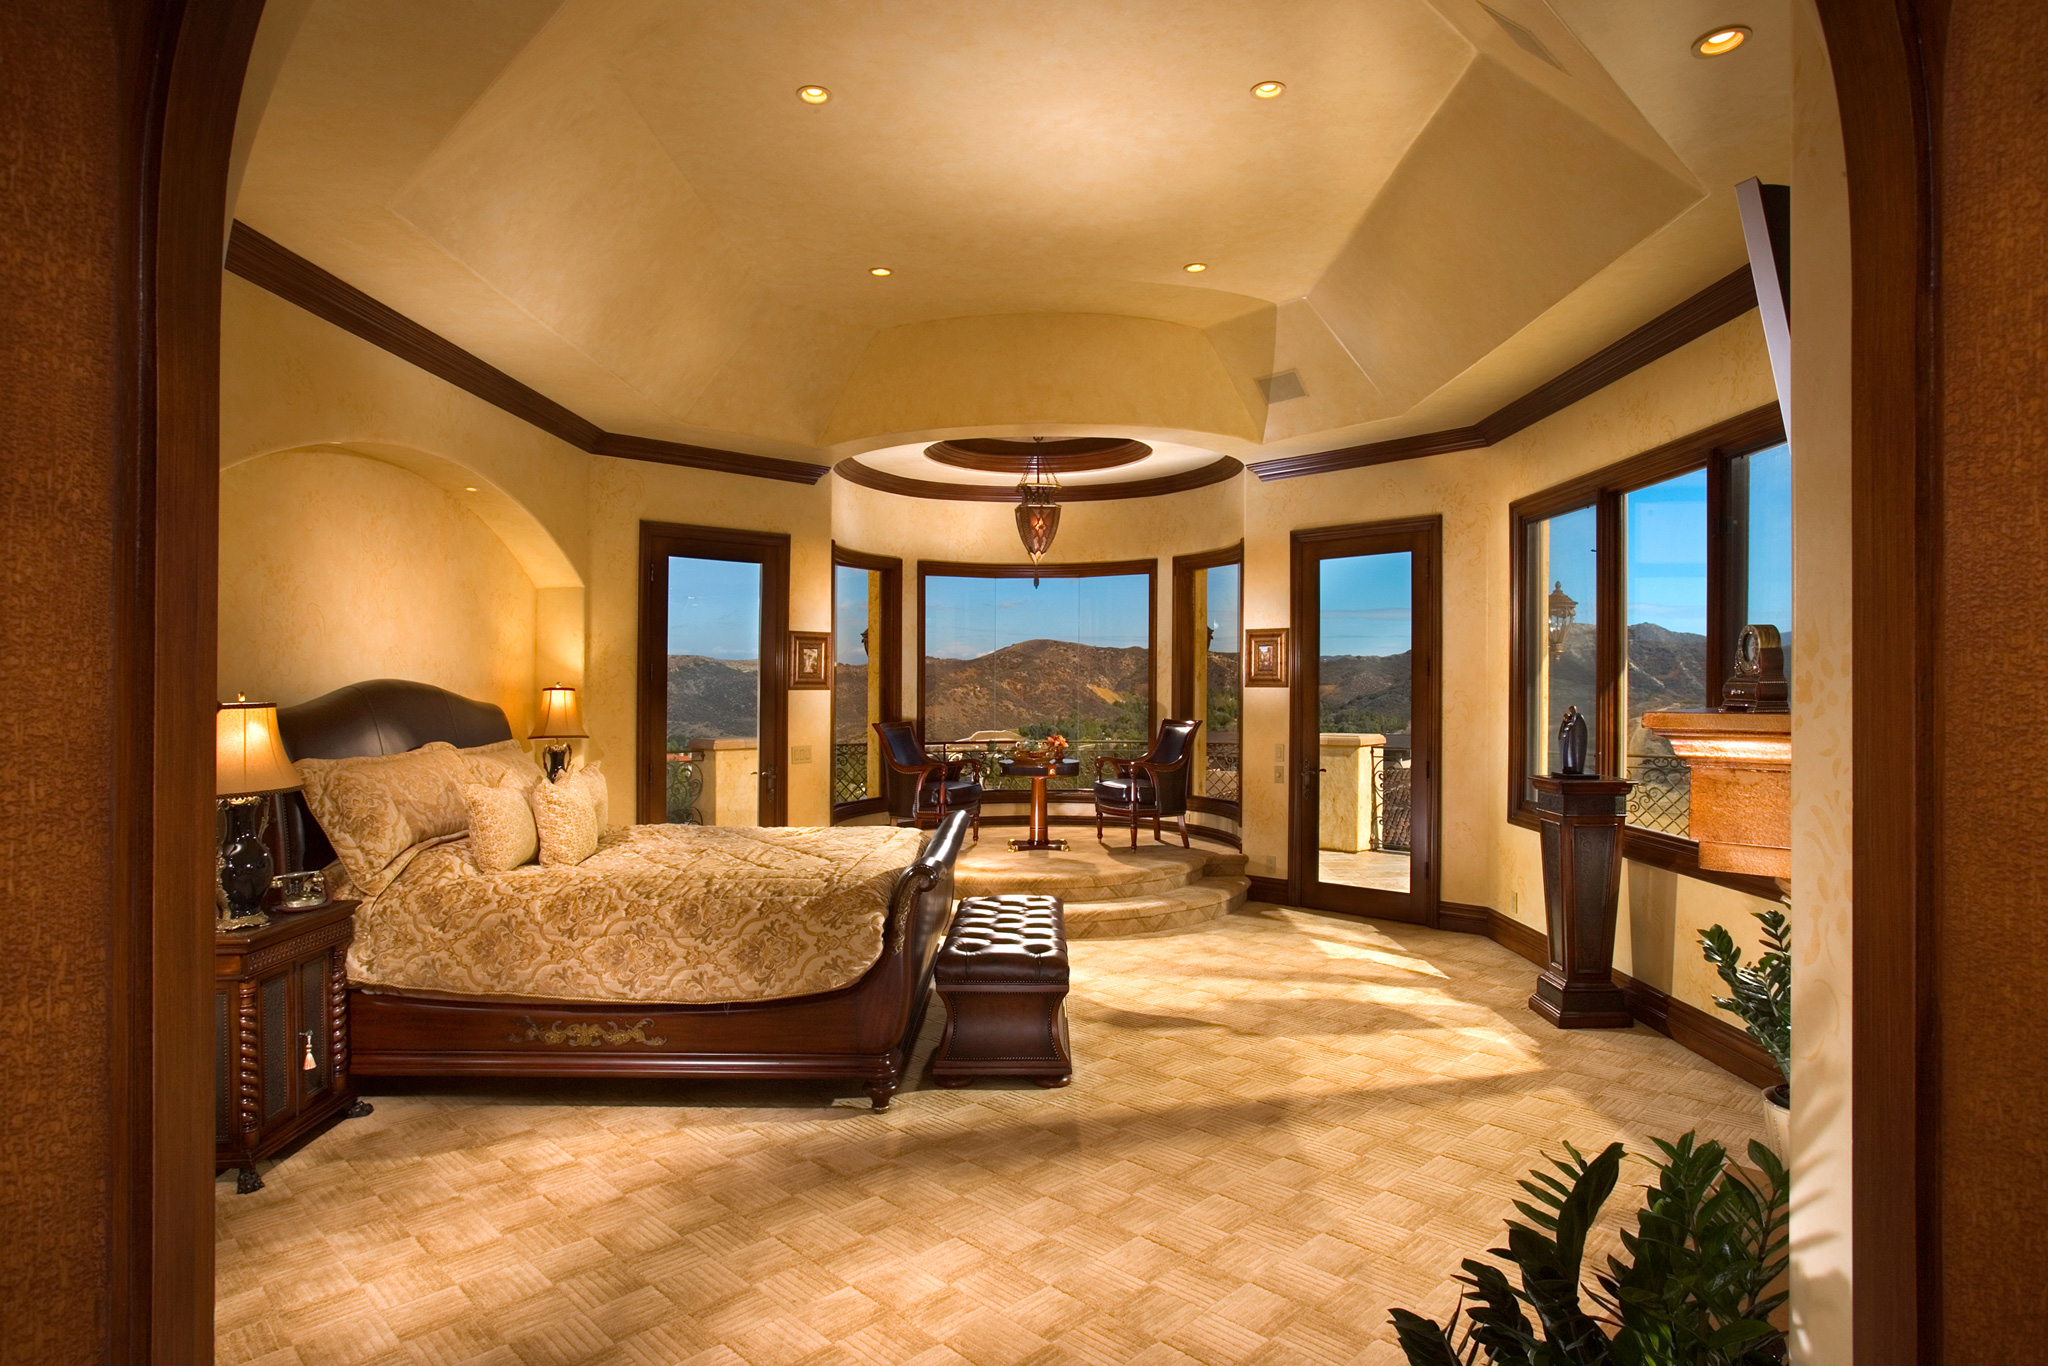 Master bedroom the interior designs for Master room design ideas